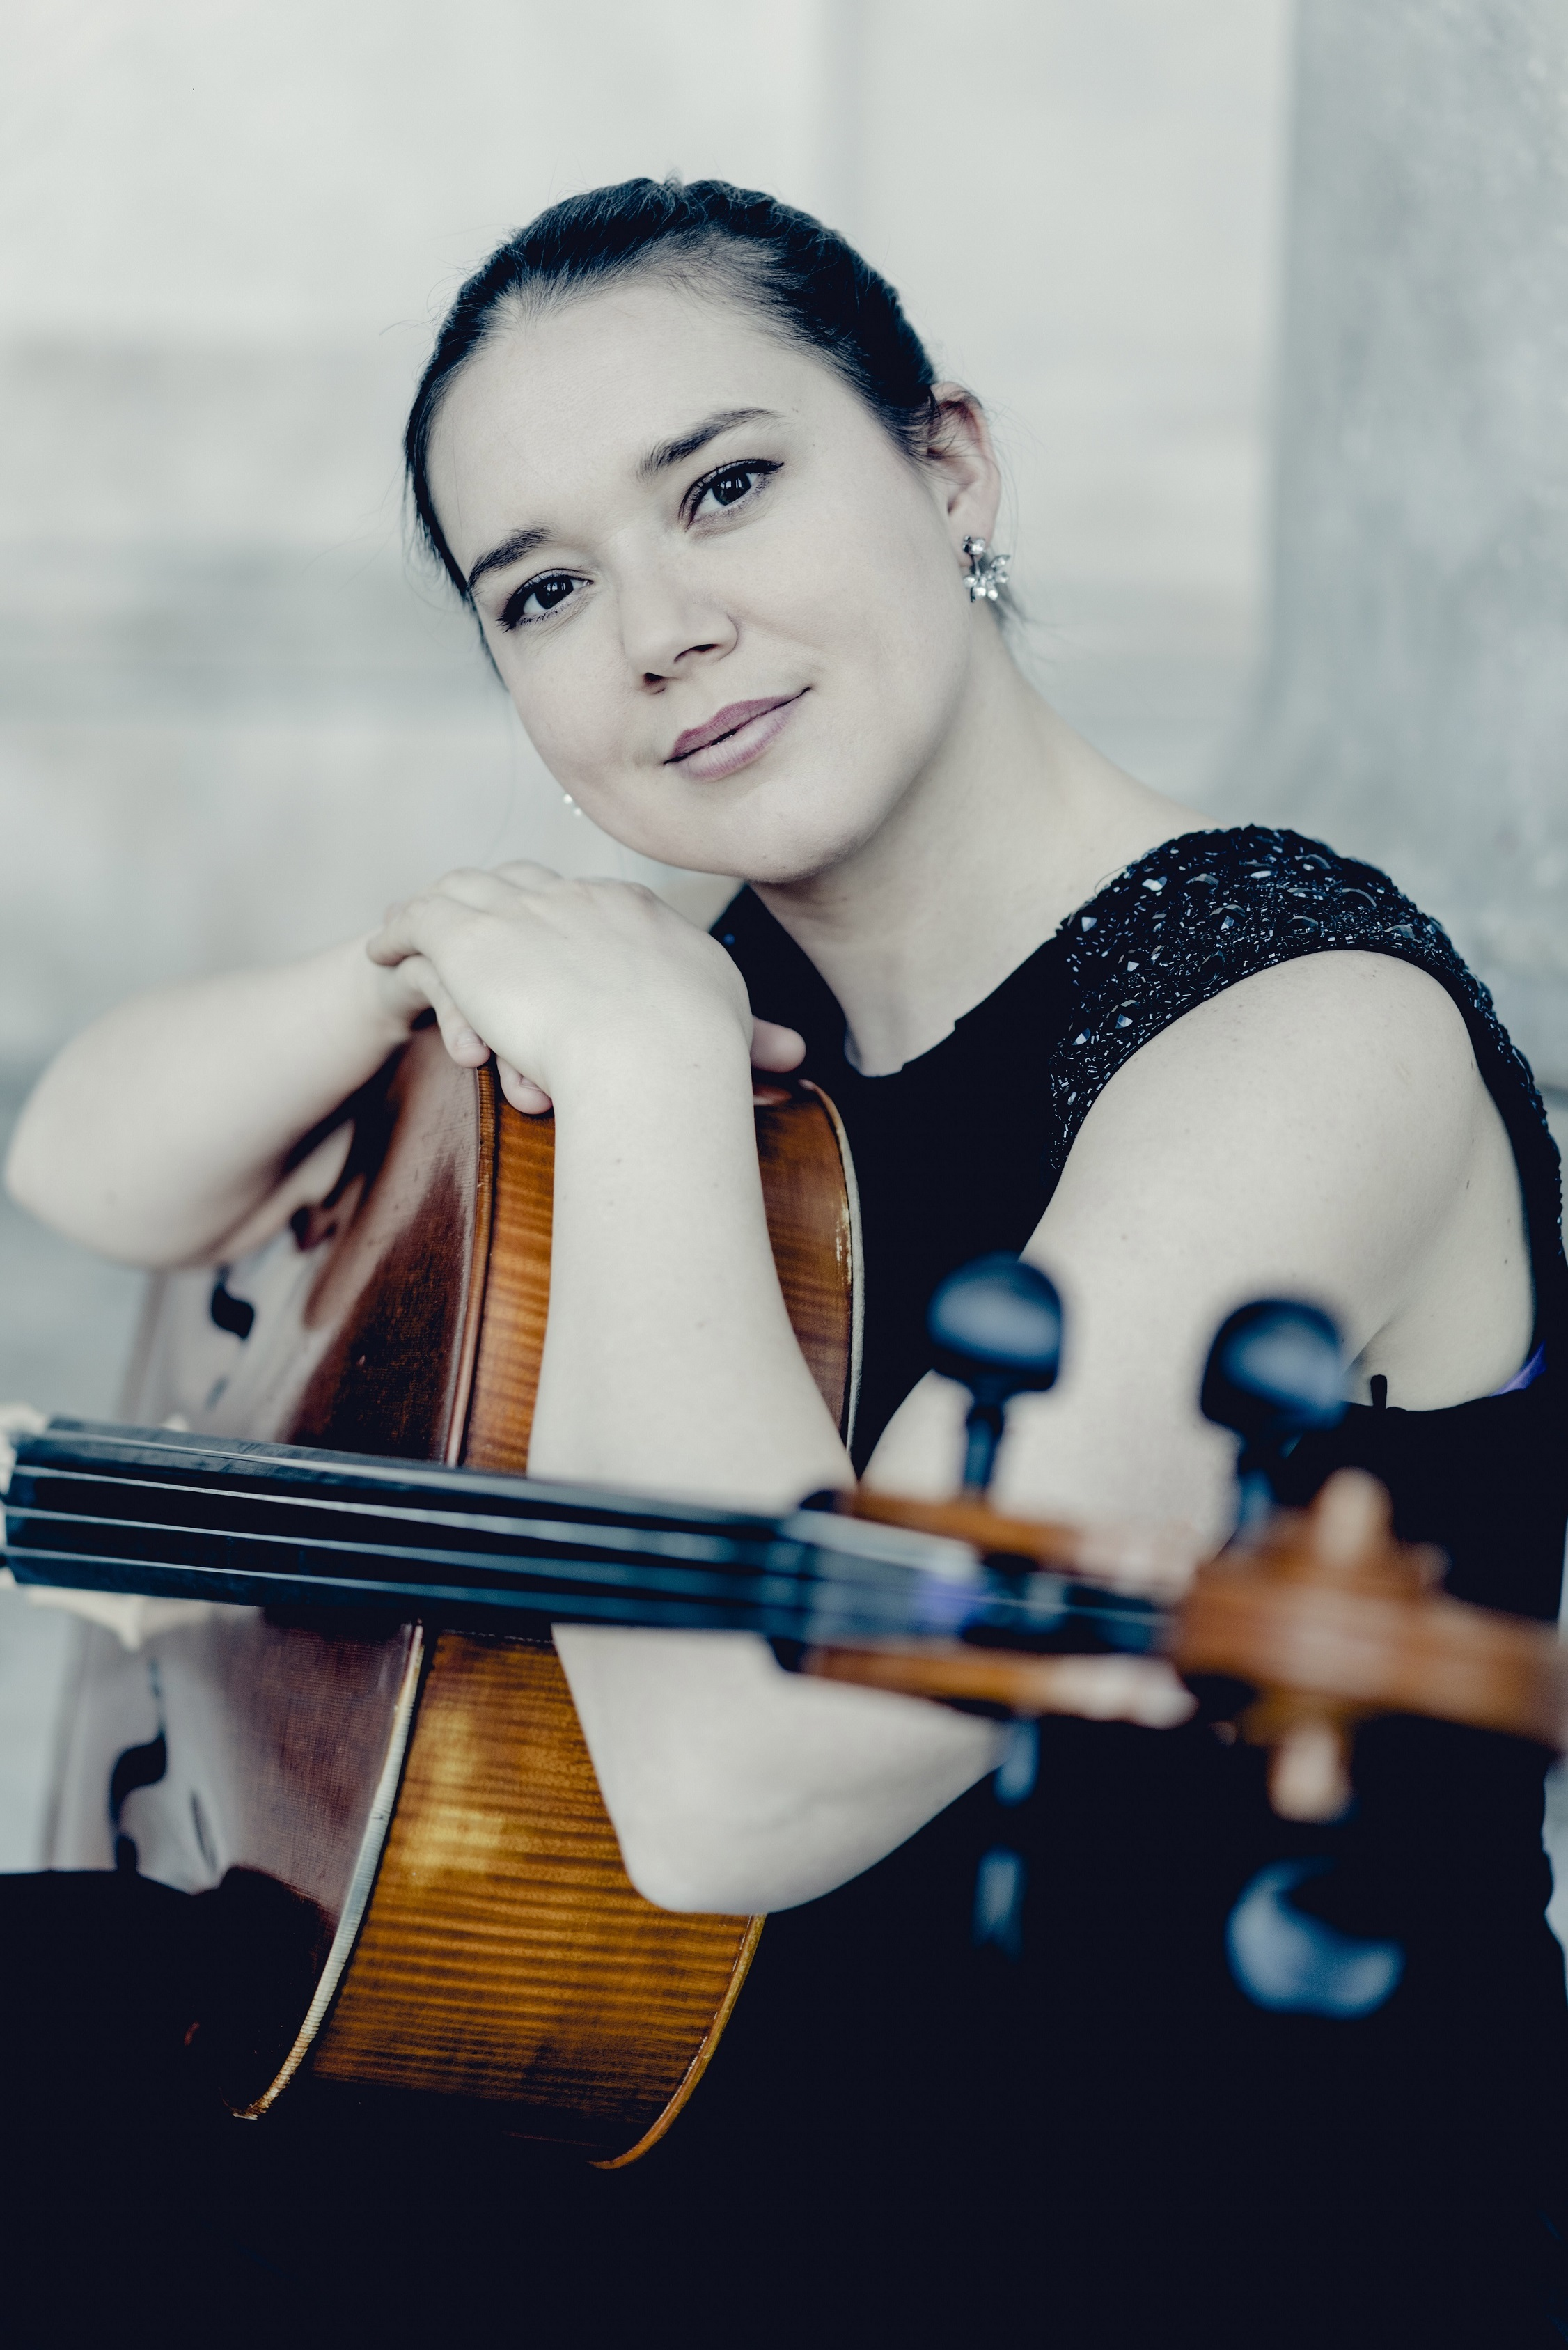 Cellist Vashti Hunter stars alongside violinist Jonian Ilias Kadesha and pianist Noam Greenberg at Askham Hall's three-day chamber music weekend, running from February 22-24